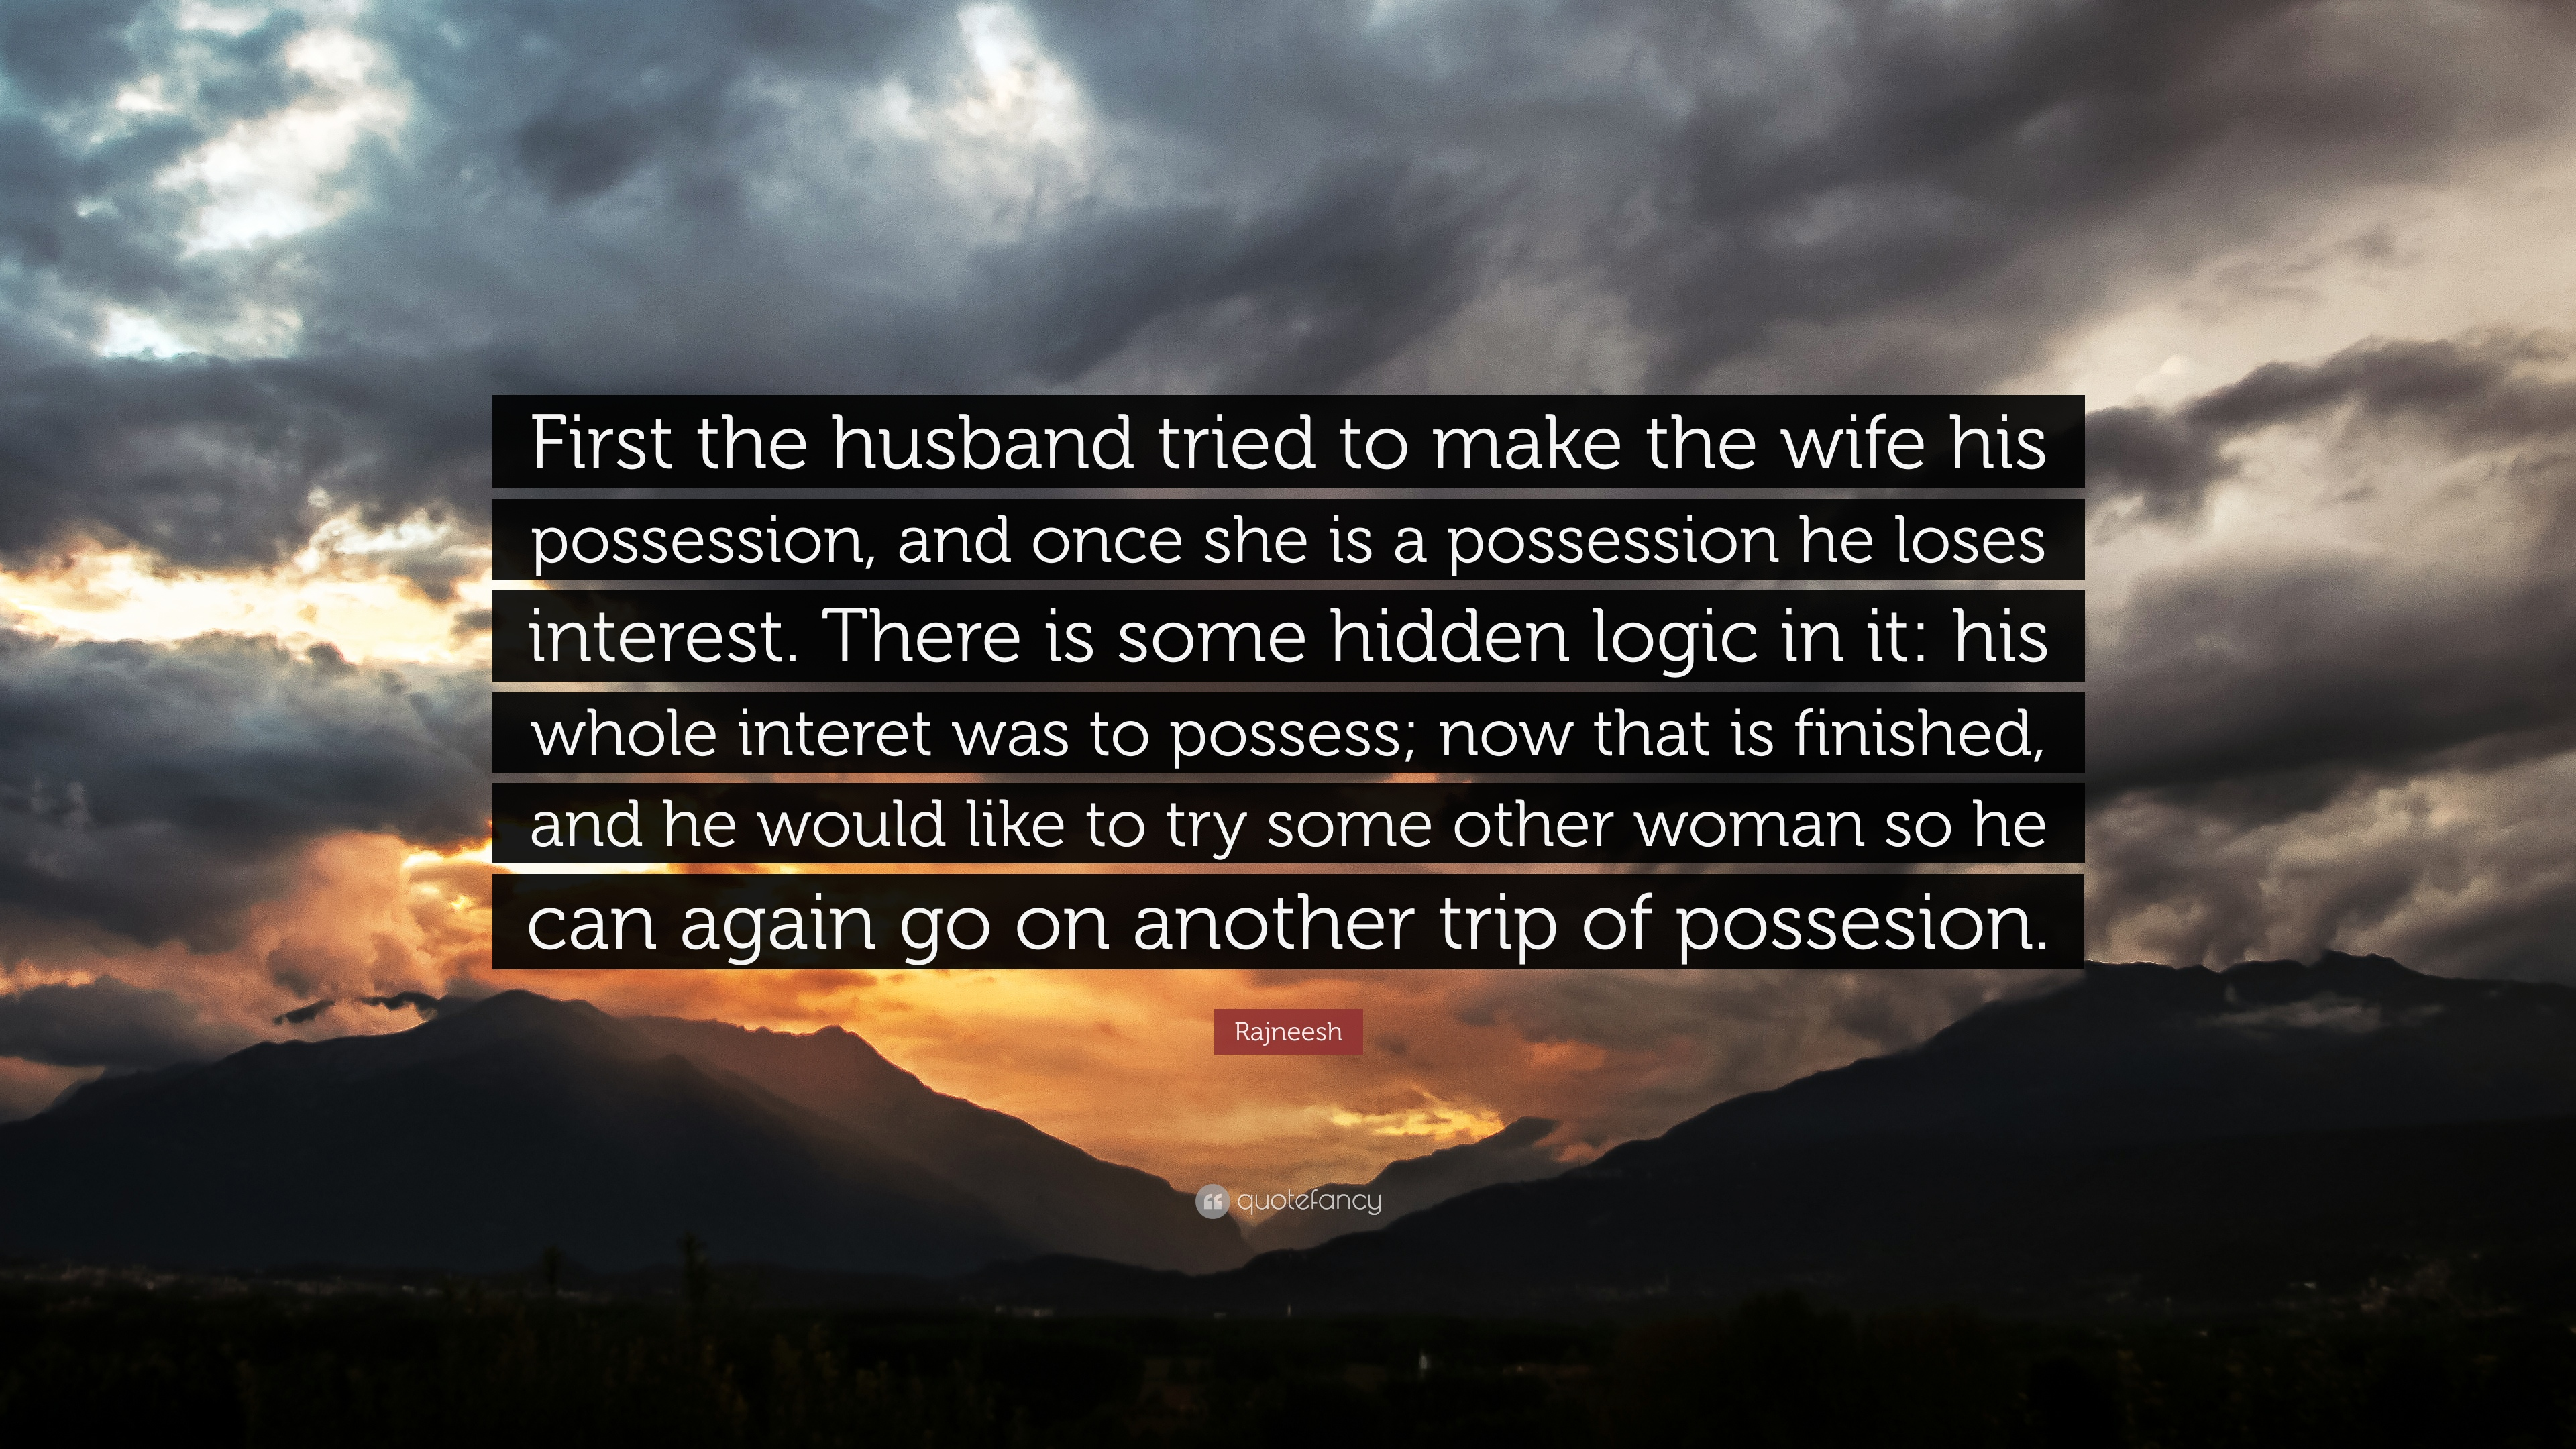 Do lose in interest women their husbands why Perfect Relationship